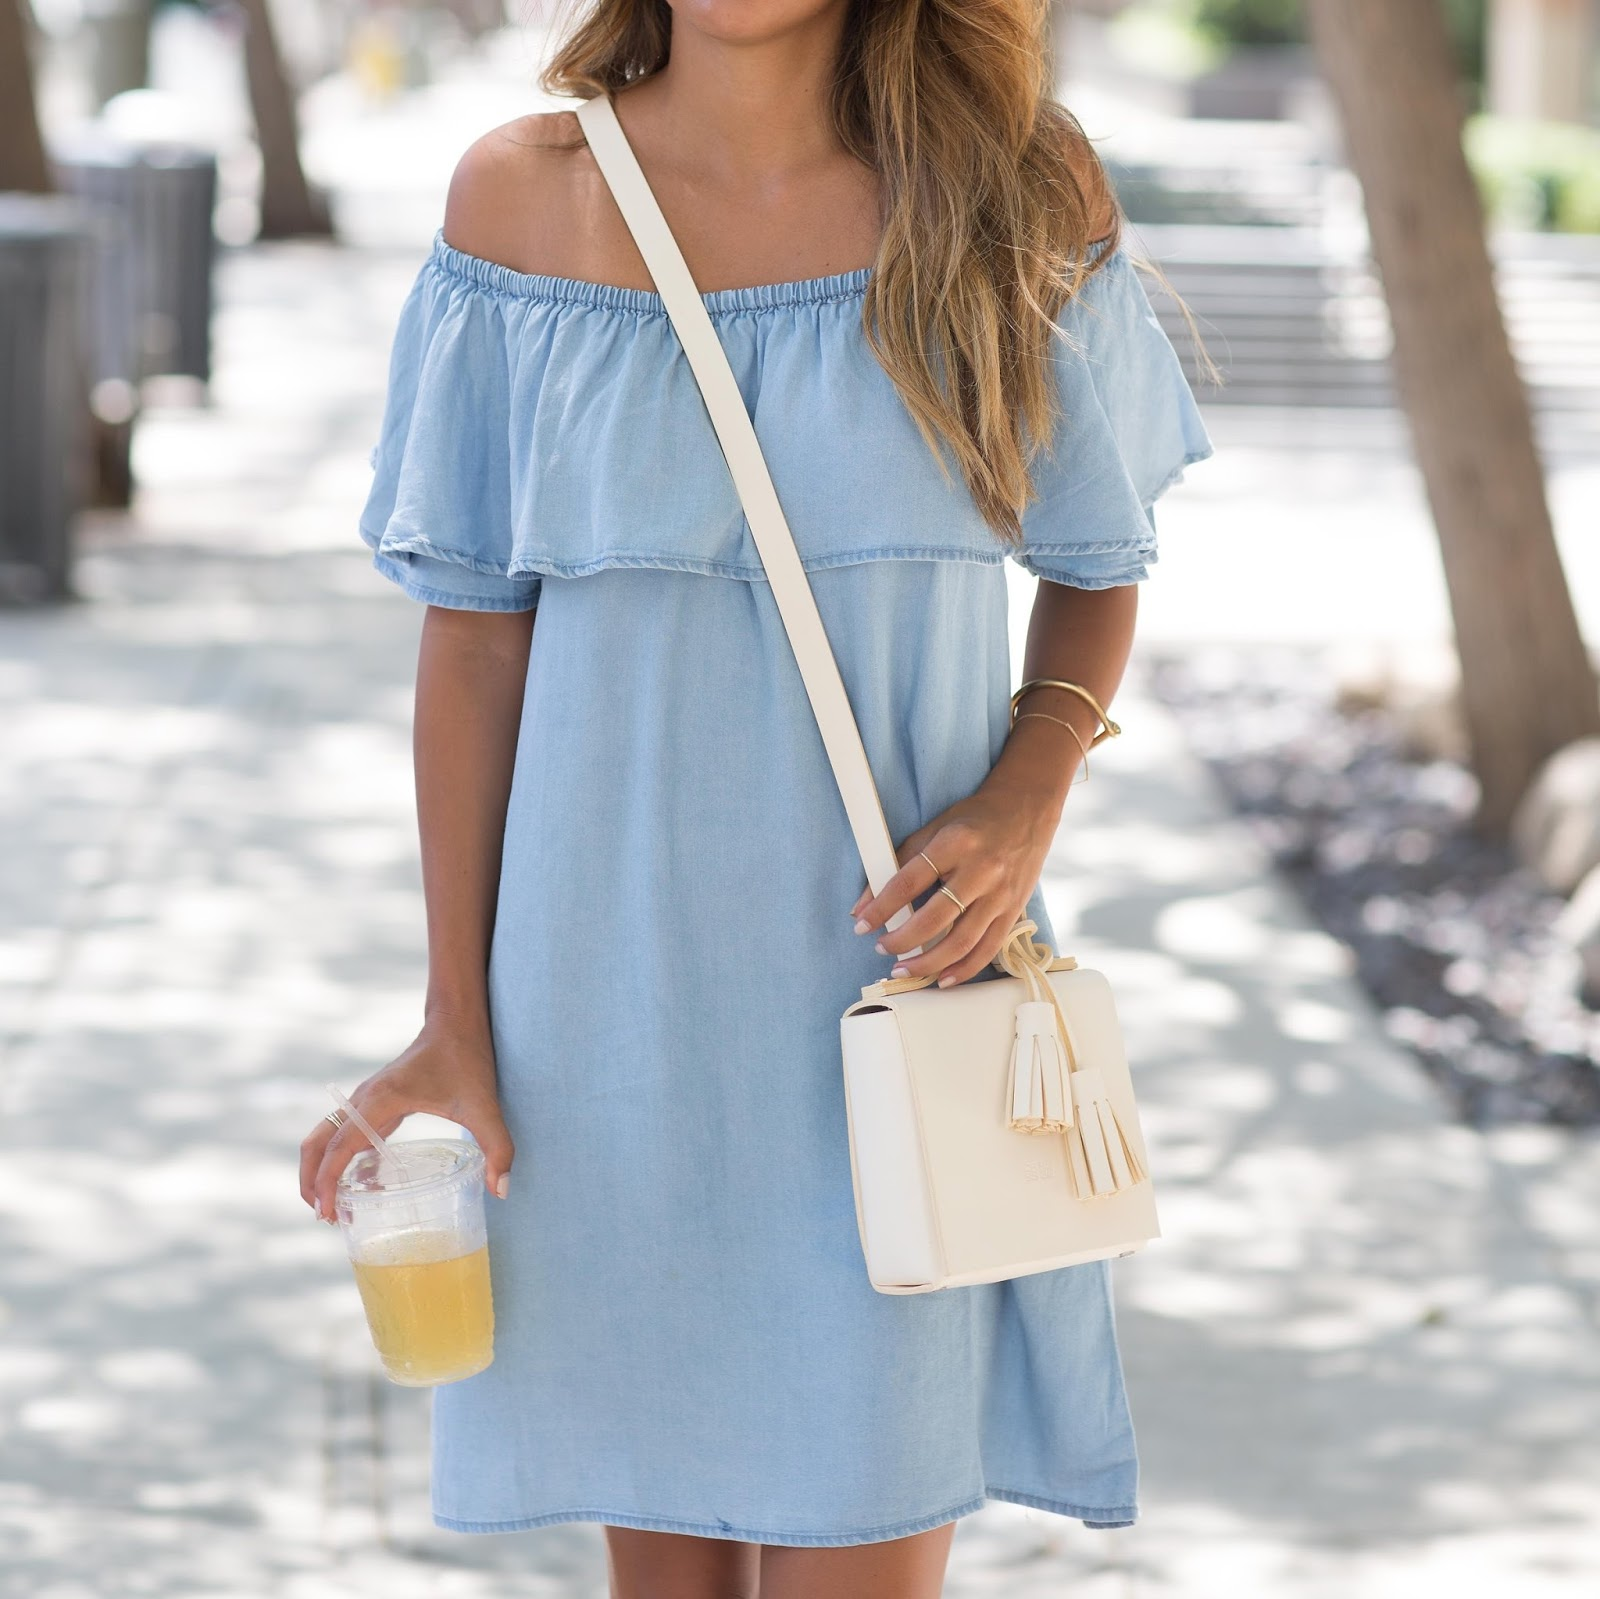 how to wear off the shoulder, chambray dress, summer outfit ideas